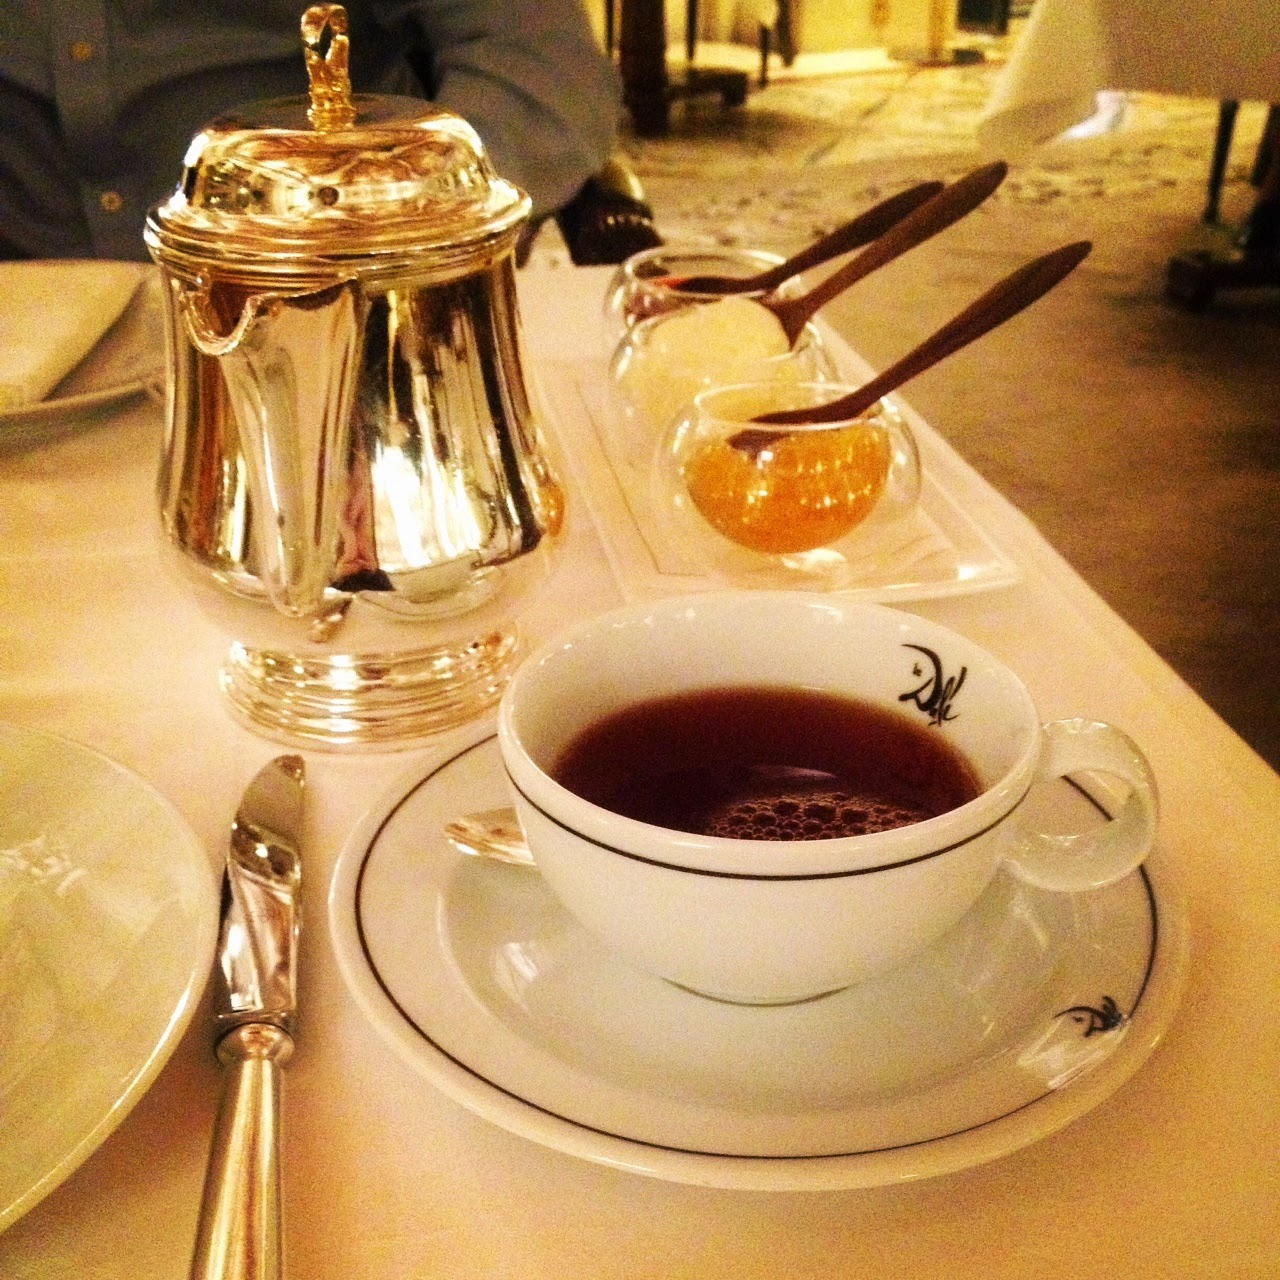 Tea, jams and clotted cream at Le Dali